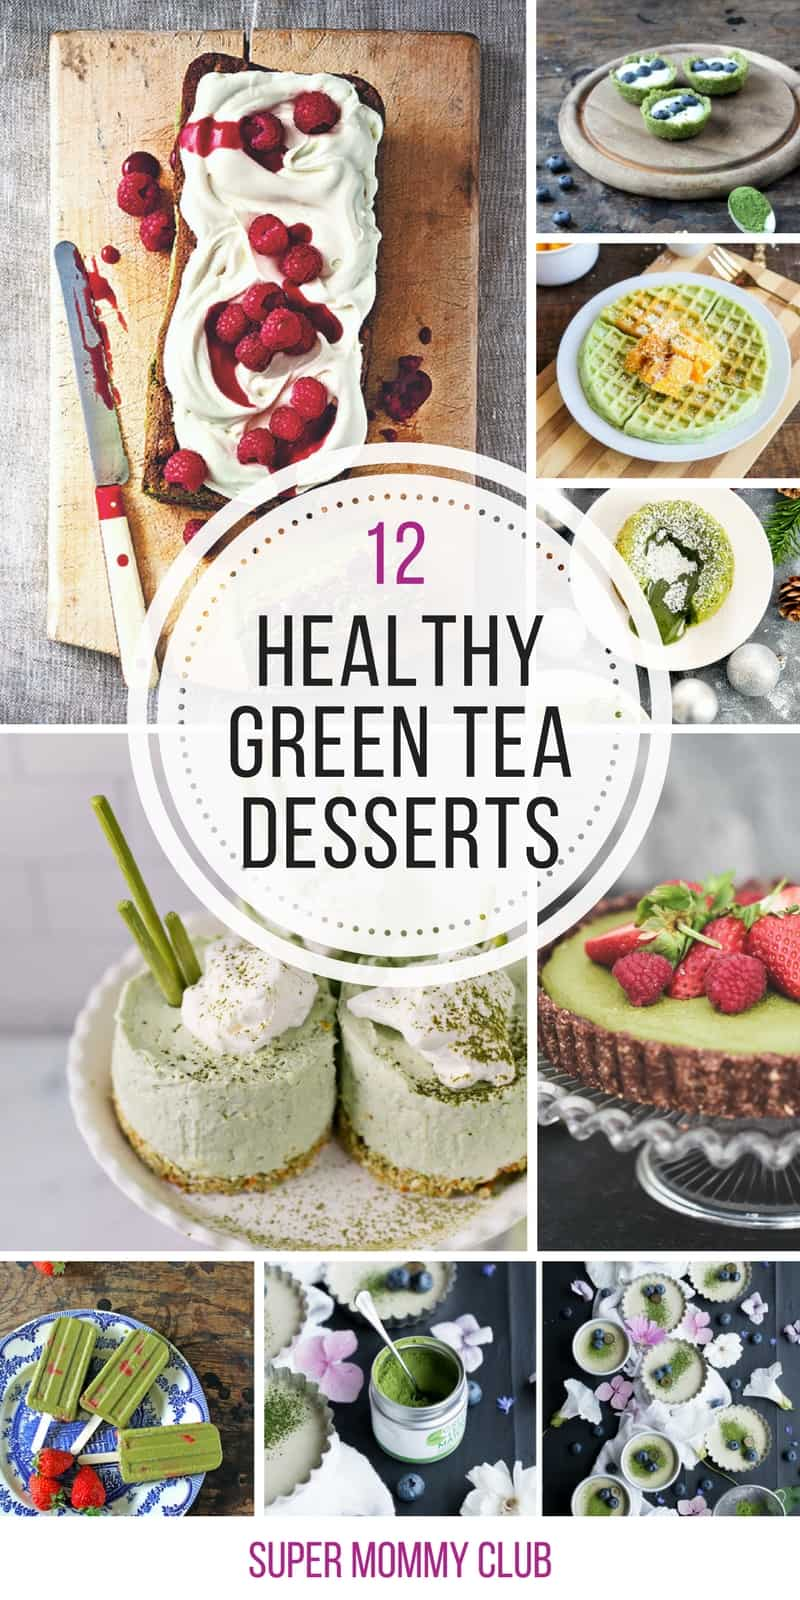 Matcha green tea is my current favourite drink - can't wait to try some of these green desserts!